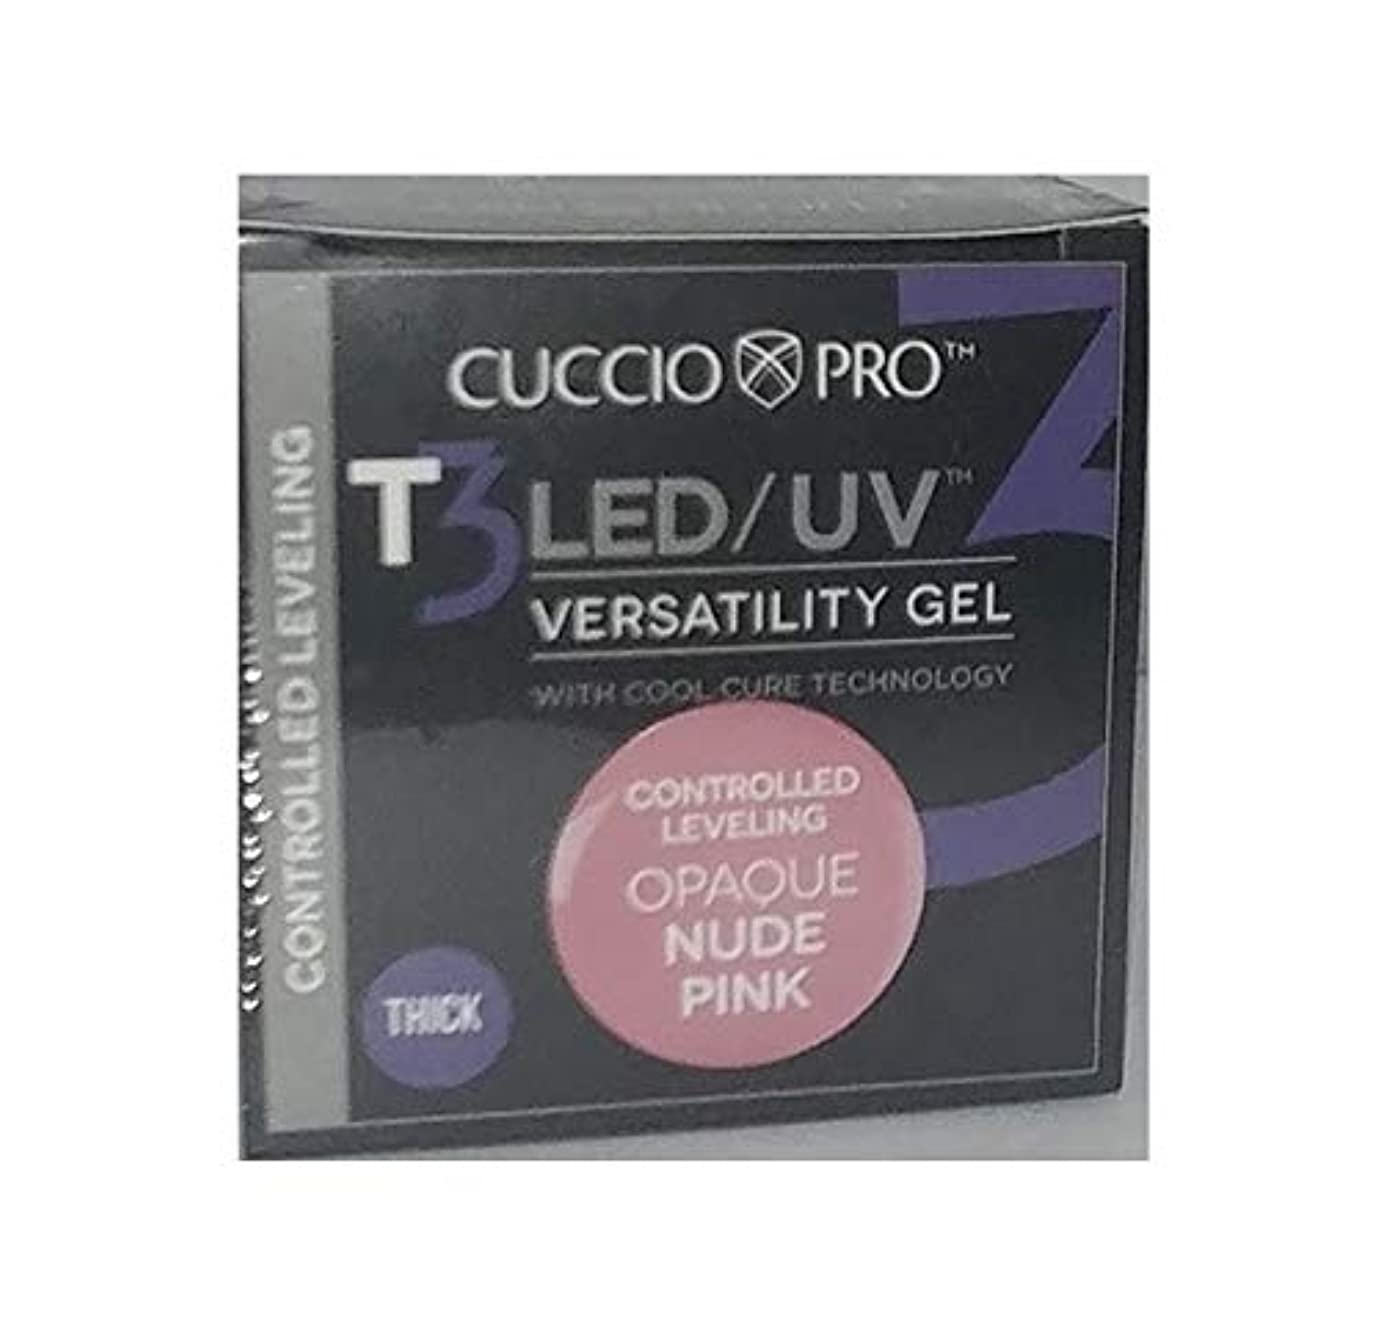 Cuccio Pro - T3 LED/UV Gel - Controlled Leveling - Opaque Nude Pink - 1 oz / 28 g